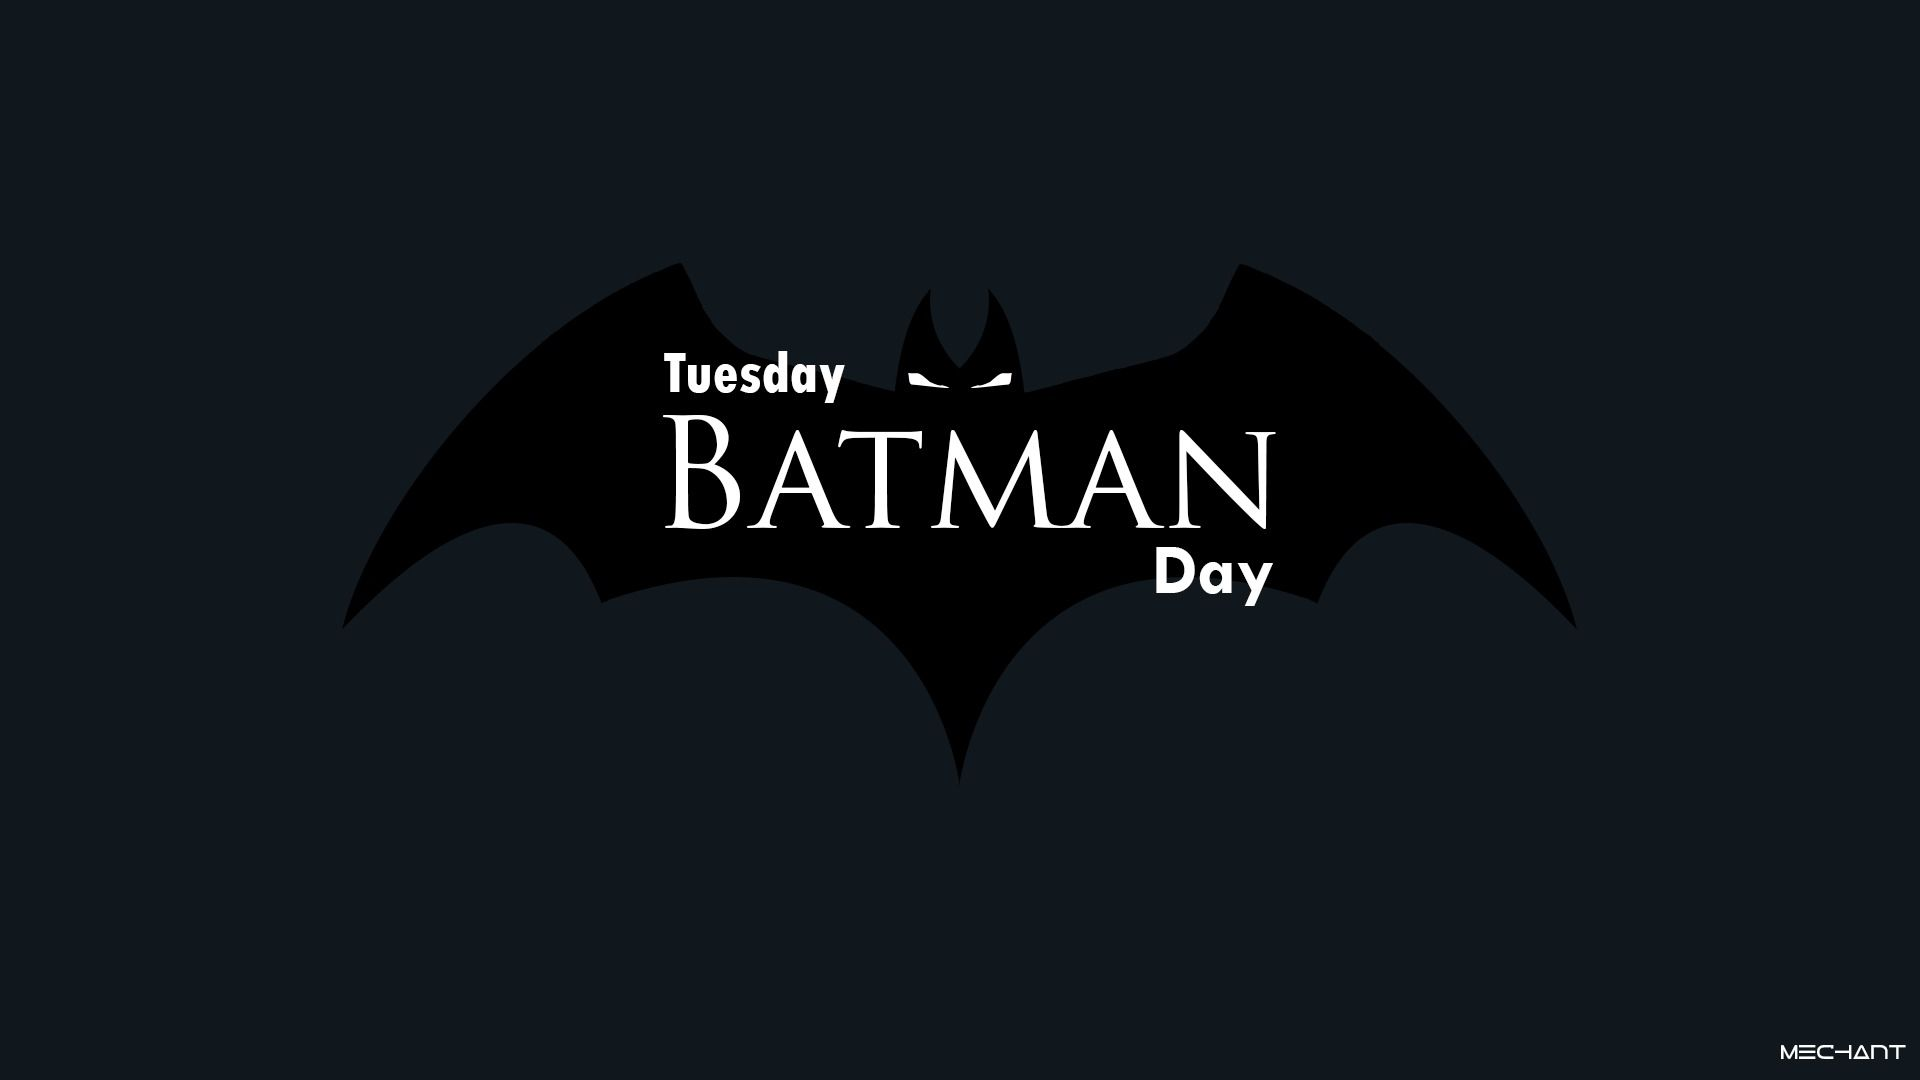 Download Wallpaper Minimalism, Logo, Day, Background, Batman, Day, Tuesday